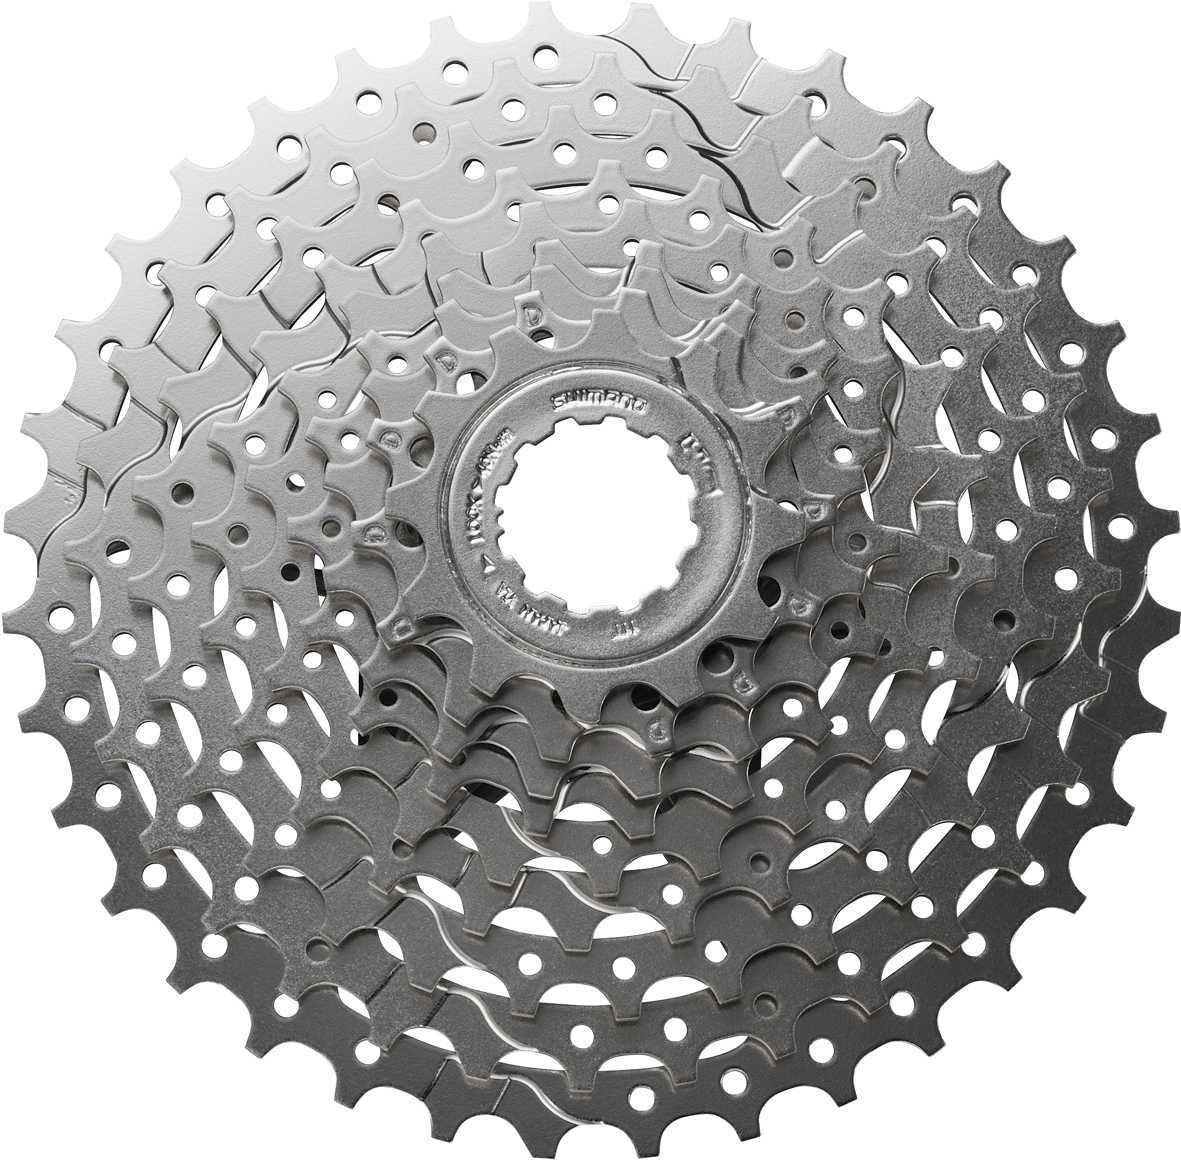 Shimano Alivio HG400  9 Speed 12-36 Tooth Cassette